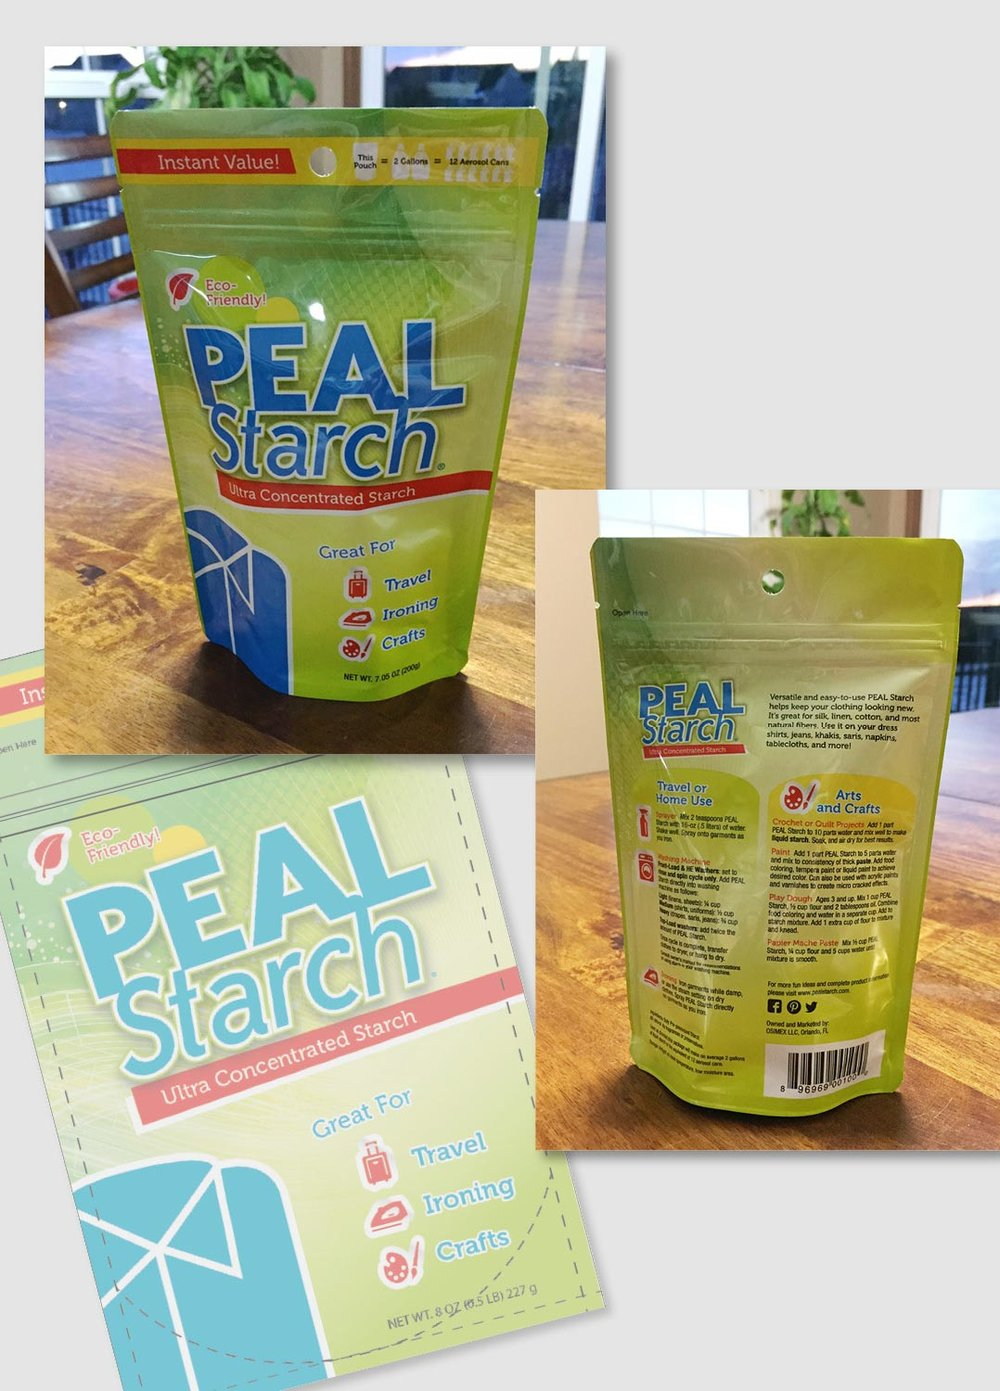 Peal Starch, a brand of clothing starch needed an updated package and wanted to focus on its multiple uses or benefits...ironing, crafts, travel, etc. I chose a bright color scheme that would be different than other packages on the store shelves and allow pertinent information to be called out. Icons were used to easily understand directions as well as possible uses for the product.      work completed for Full Circle Creative